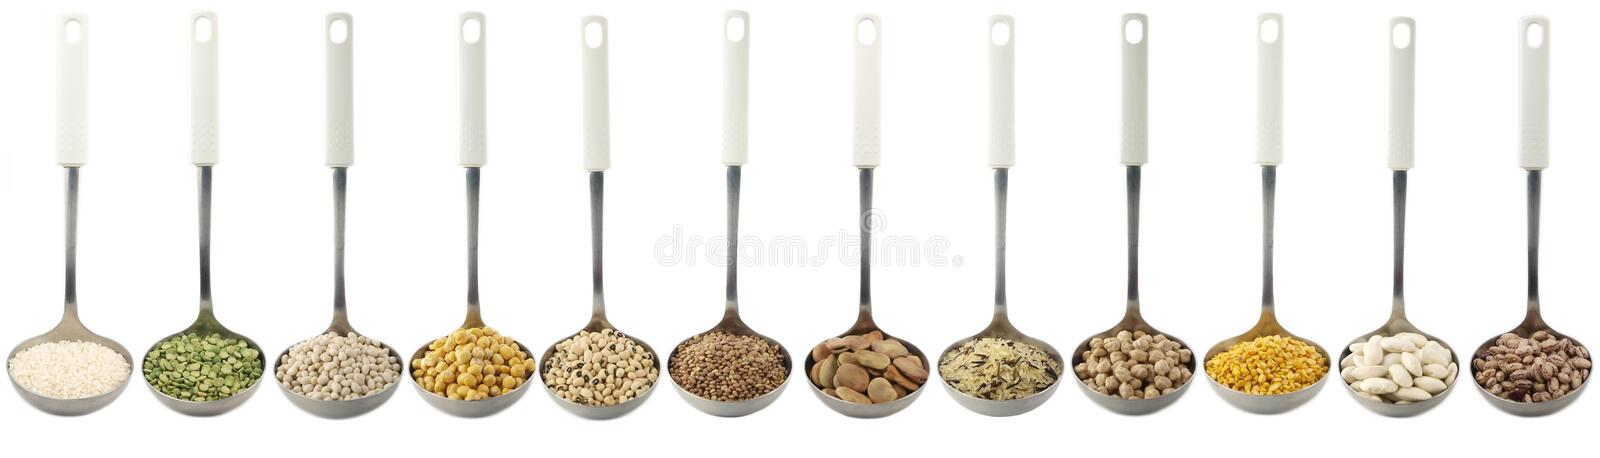 Variety of raw legumes and rices in ladles - white background. Variety of raw legumes and rices in ladles on white background stock photography